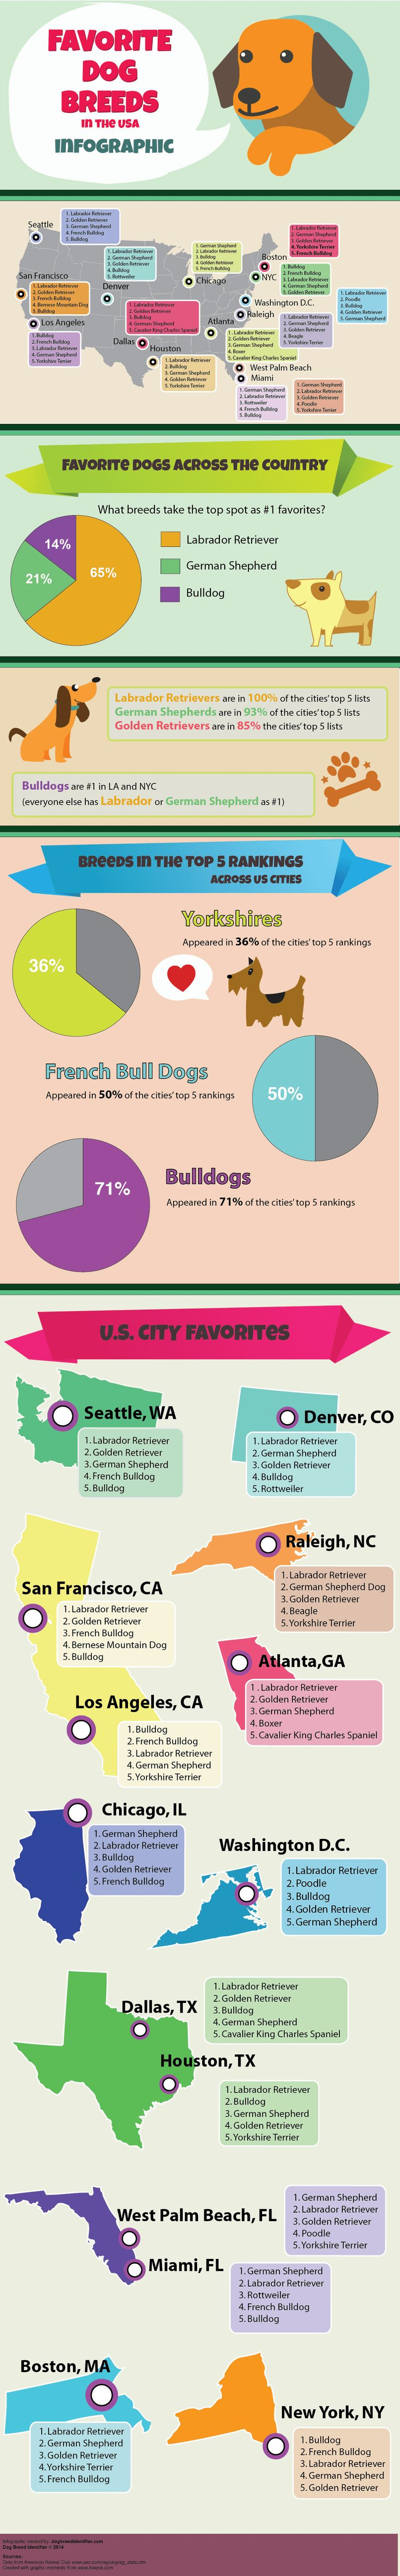 Top Dog Breeds aux Etats-Unis Infographic